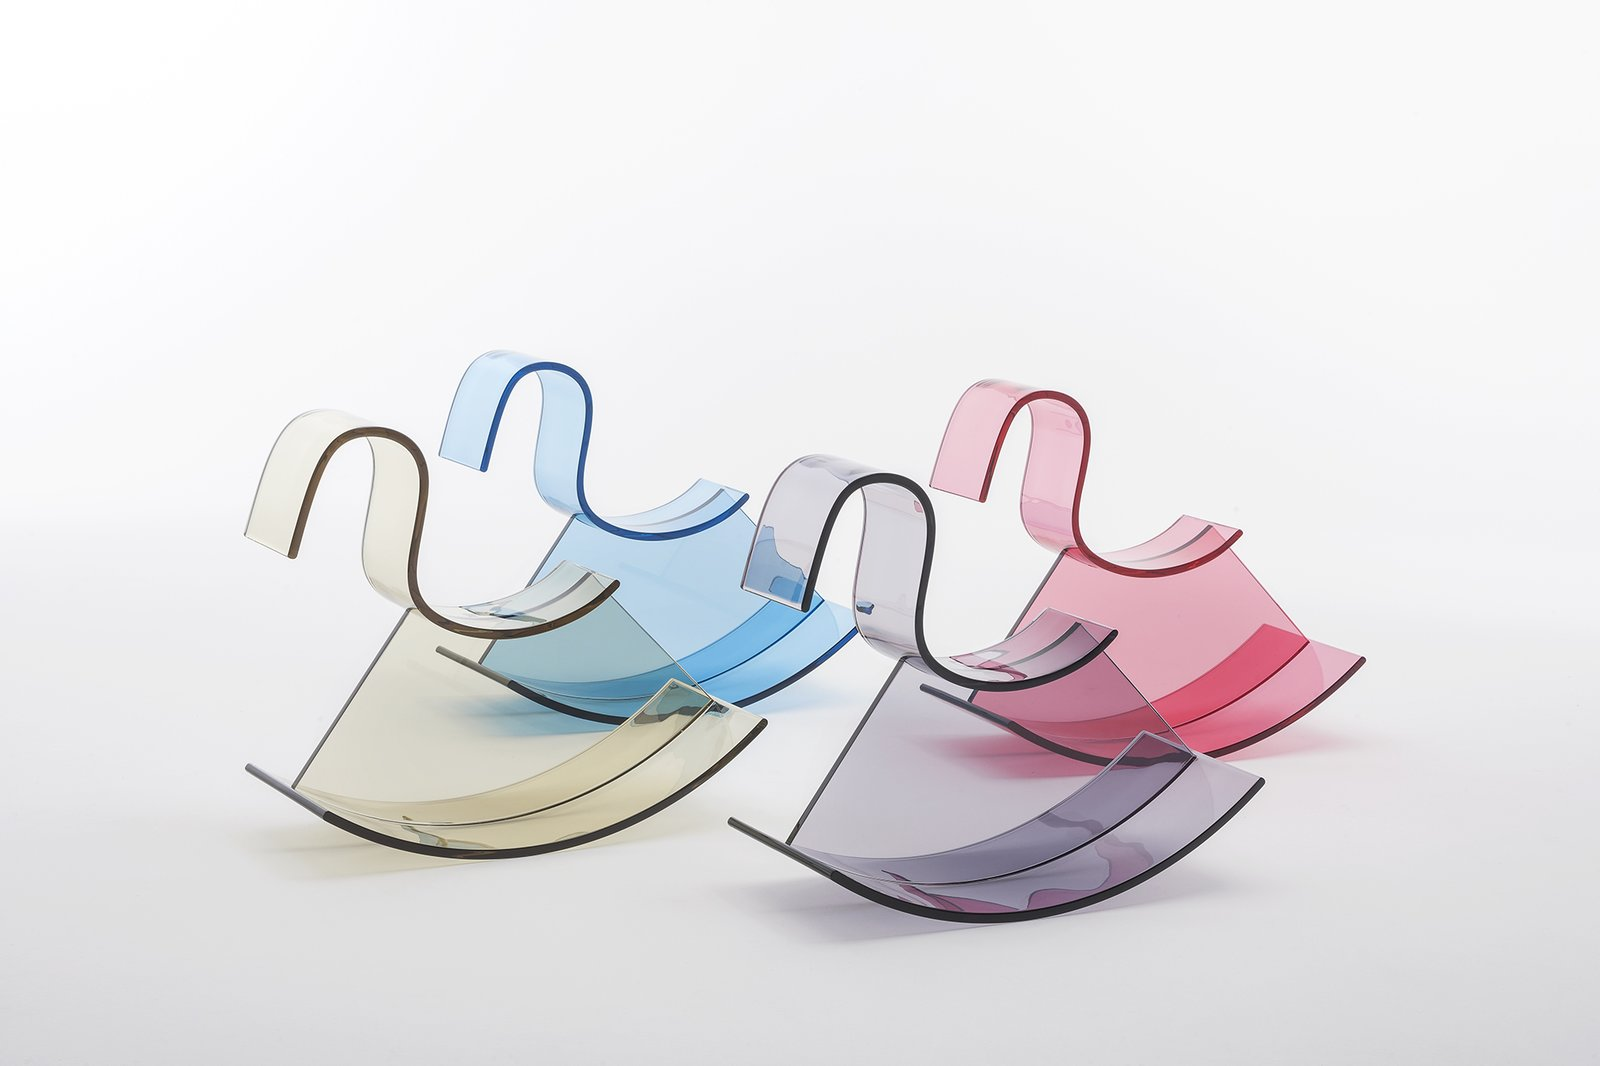 H-Horse by Nendo for Kartell  Kartell Takes on the Rocking Horse with a Super Kids' Line by Allie Weiss